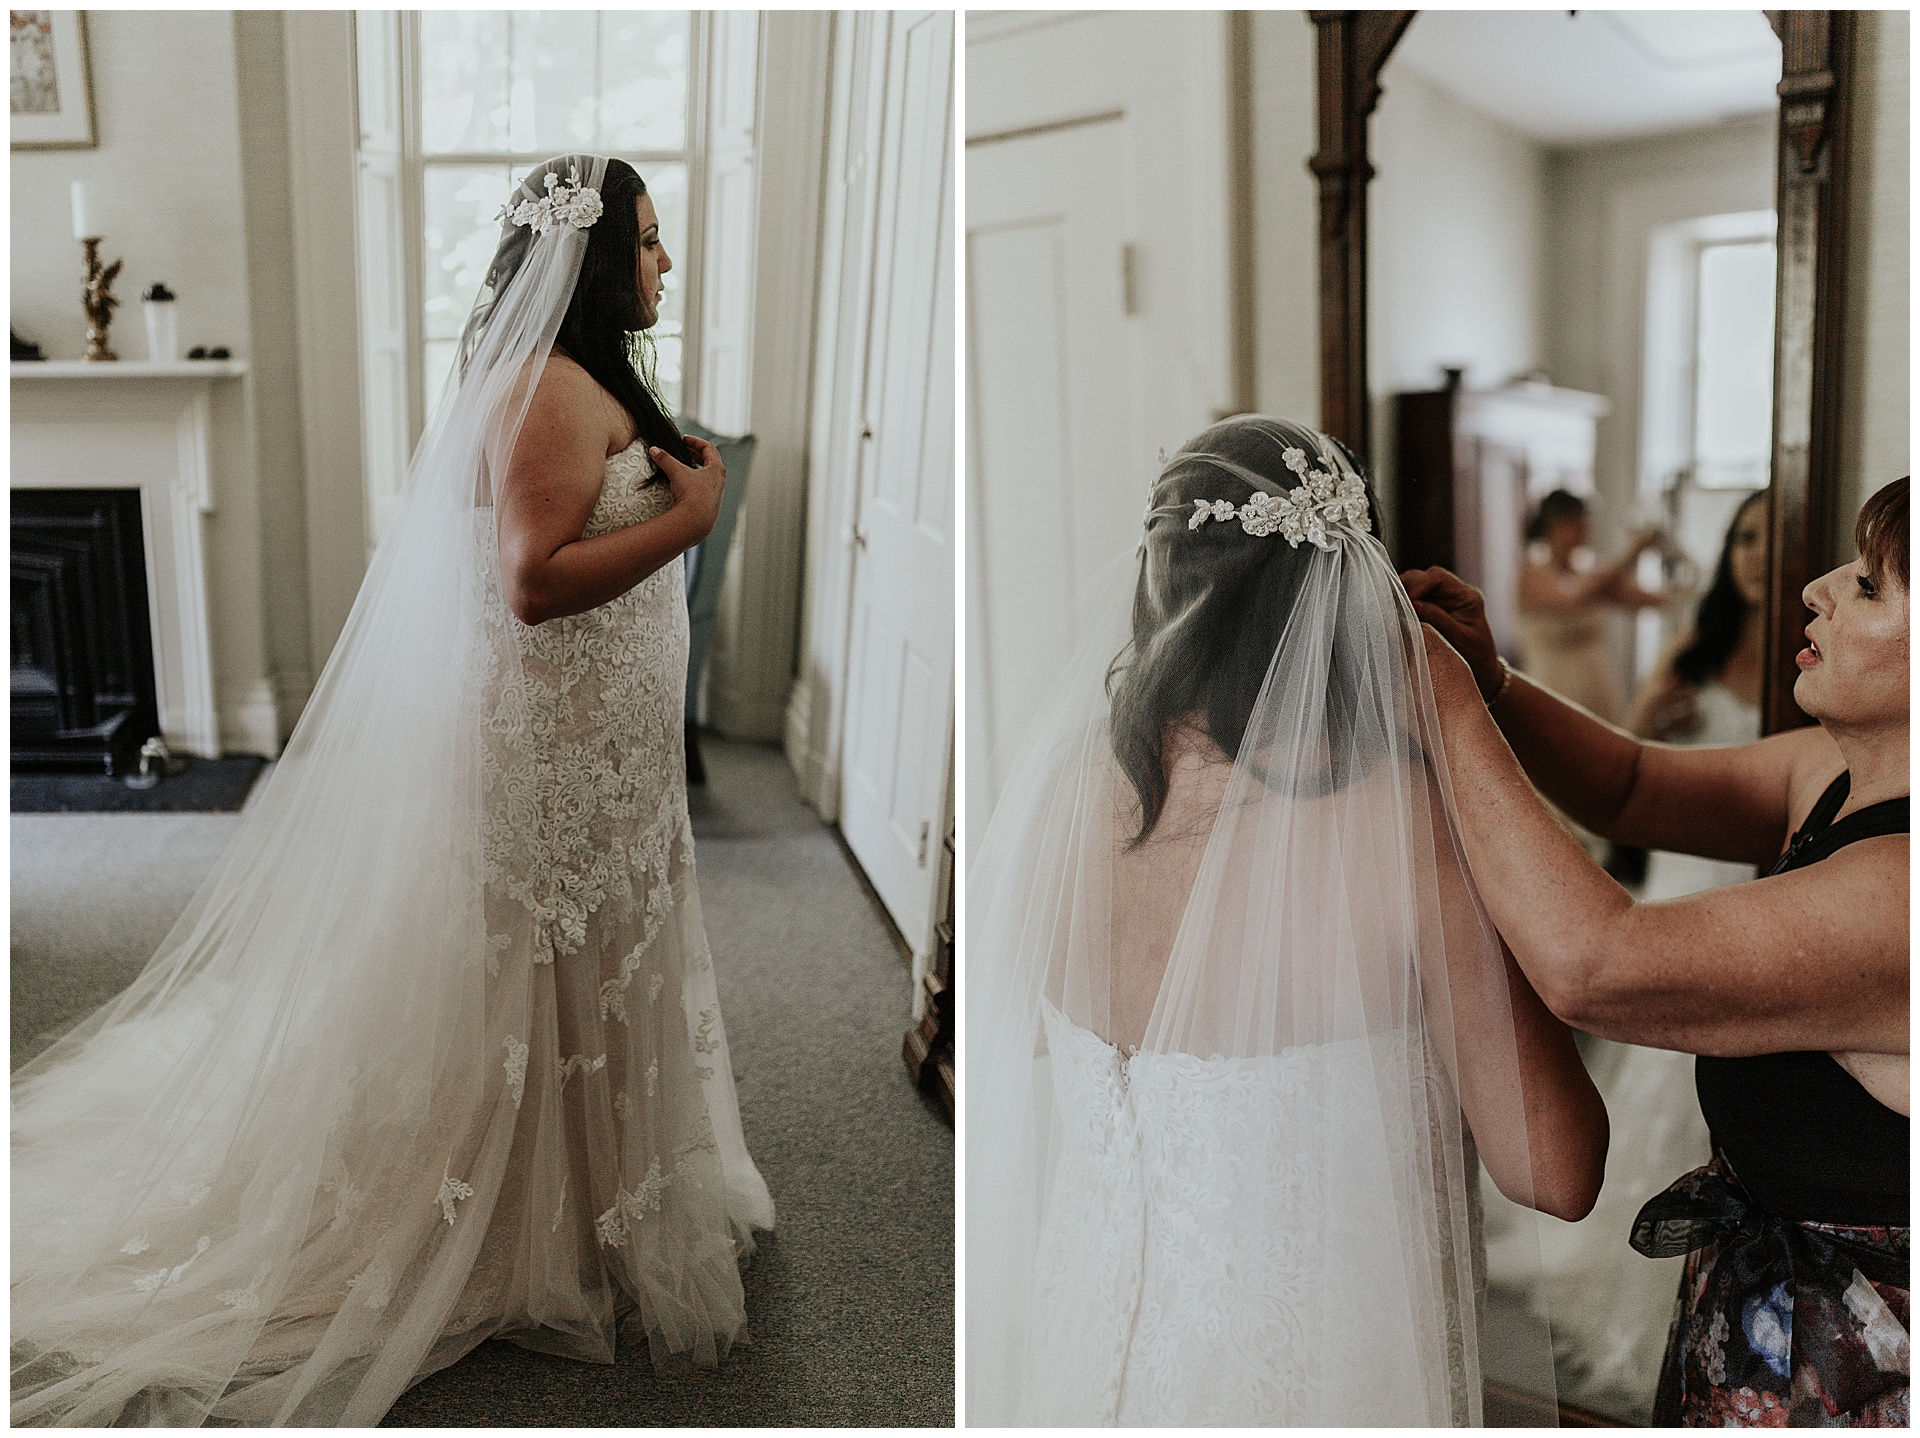 kelton house wedding columbus ohio_mia dimare photo10.jpg